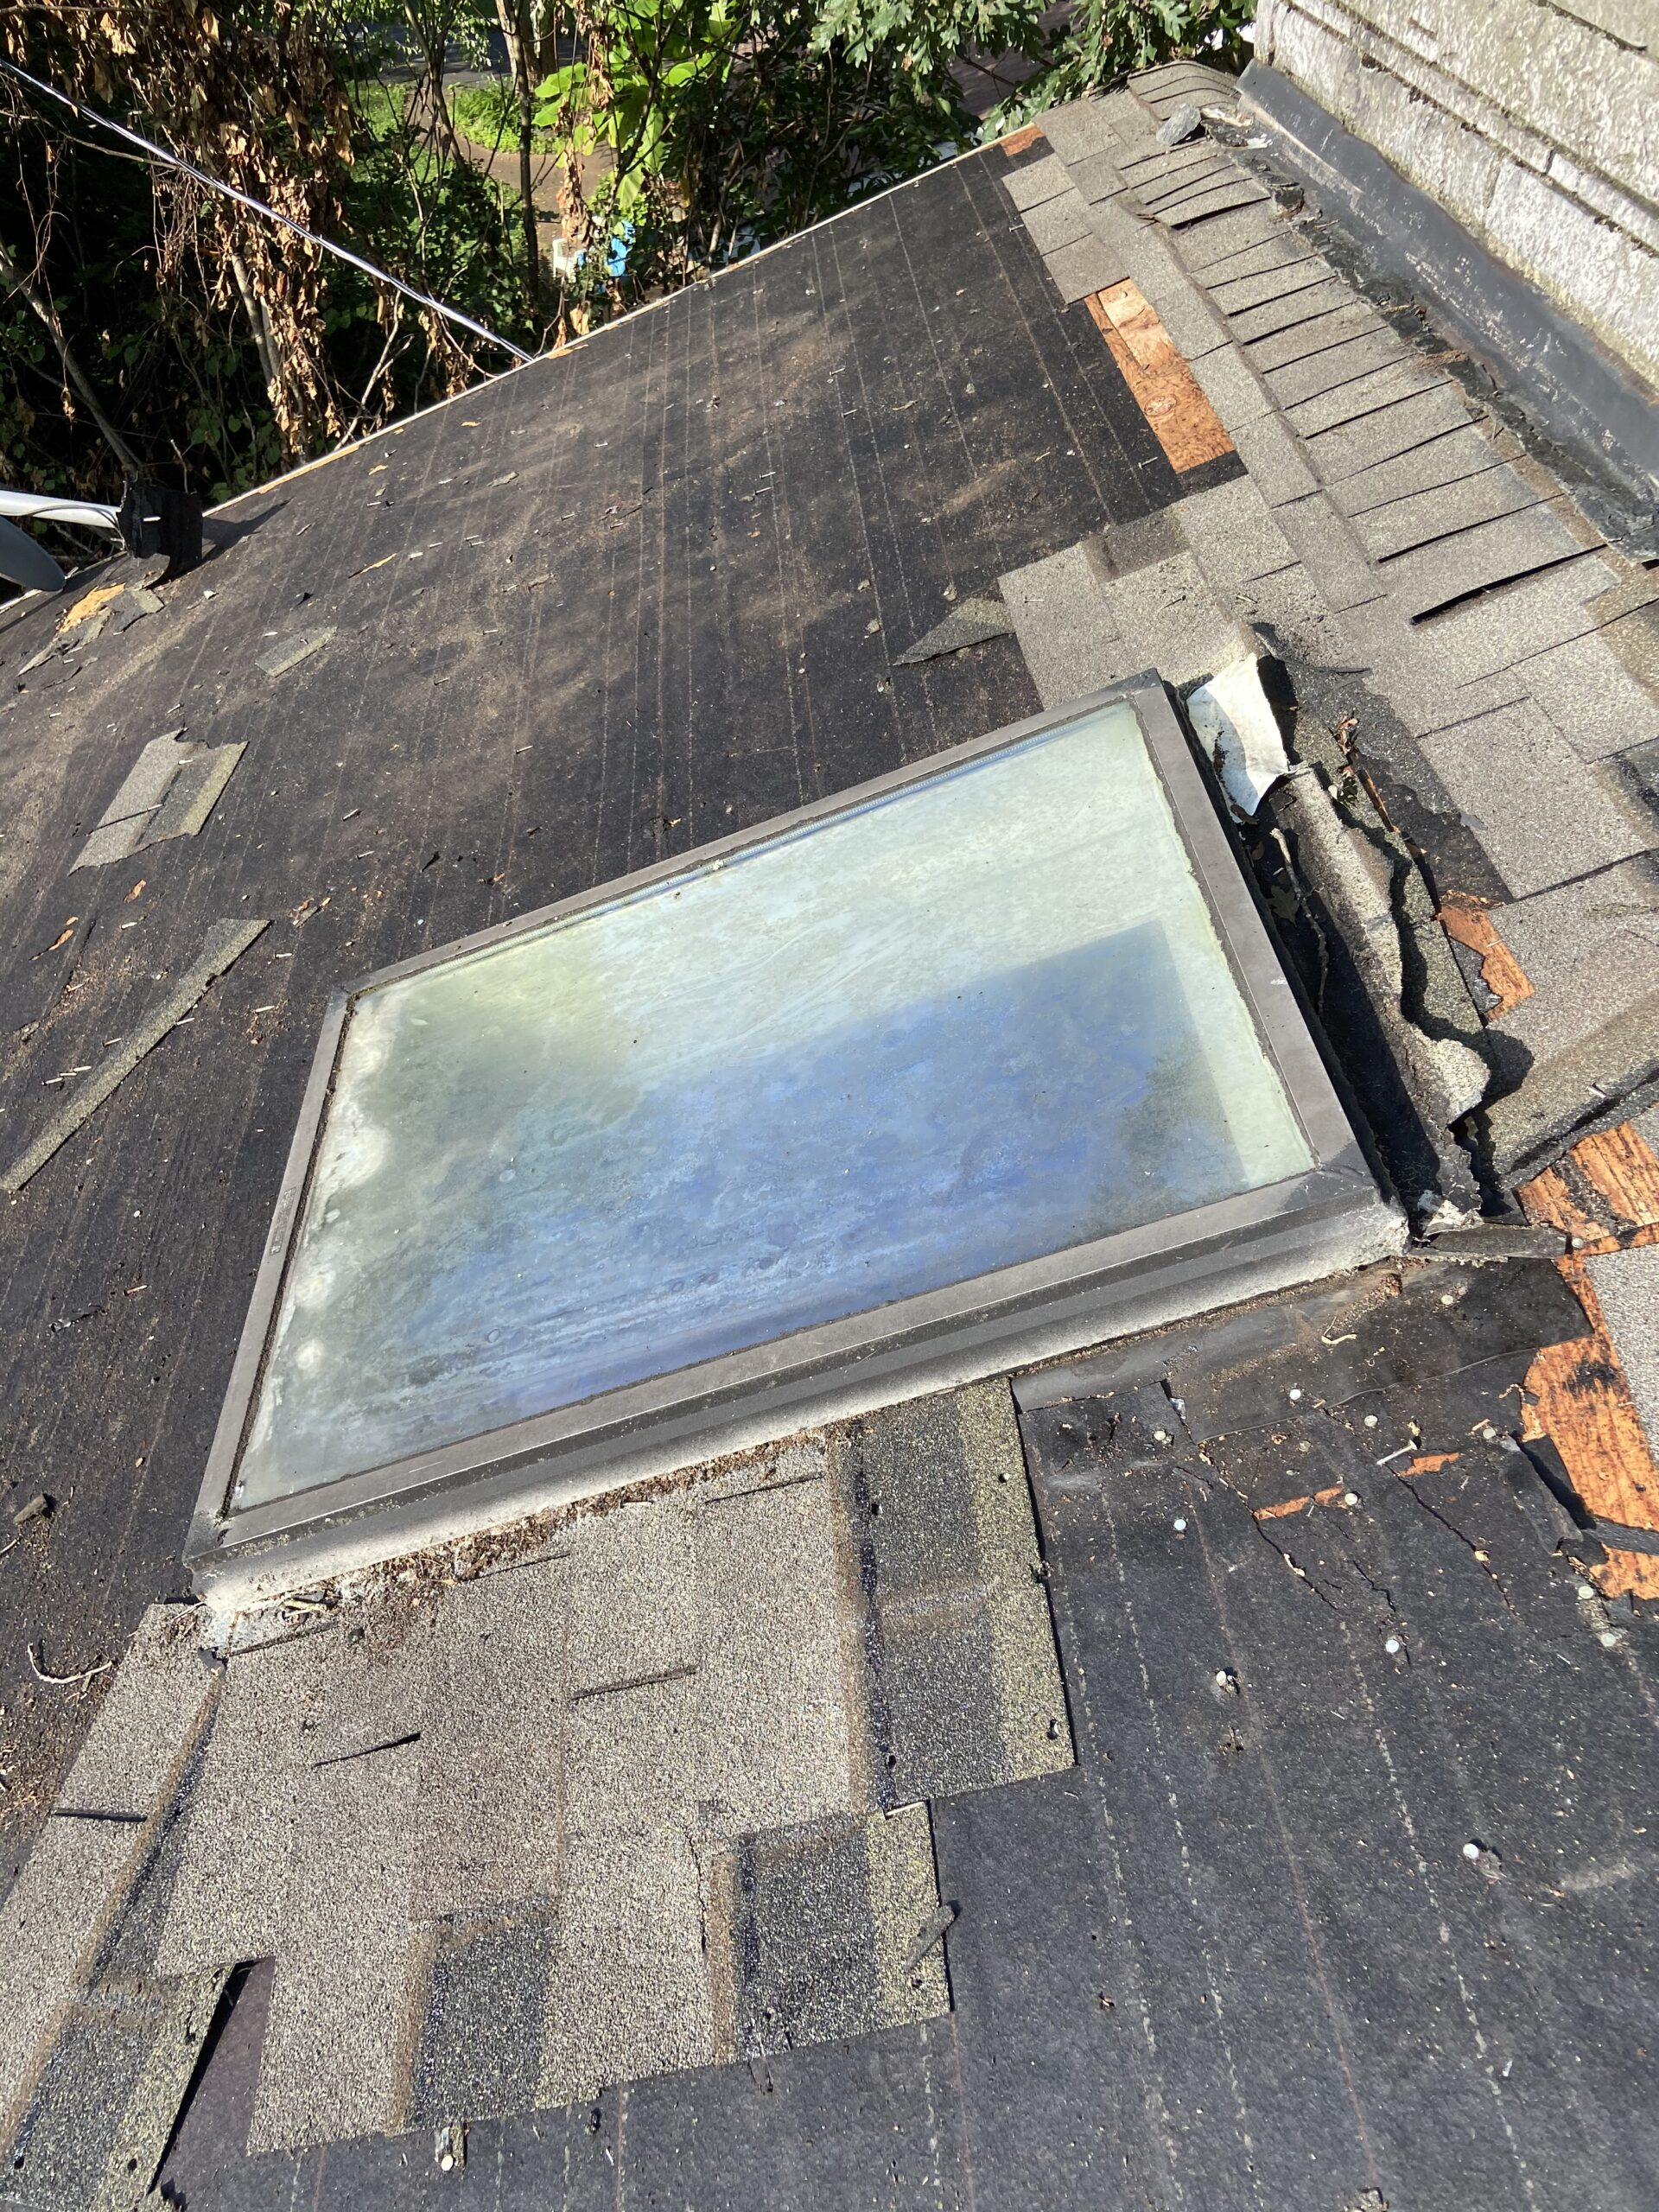 The skylight with all the shingles removed around it